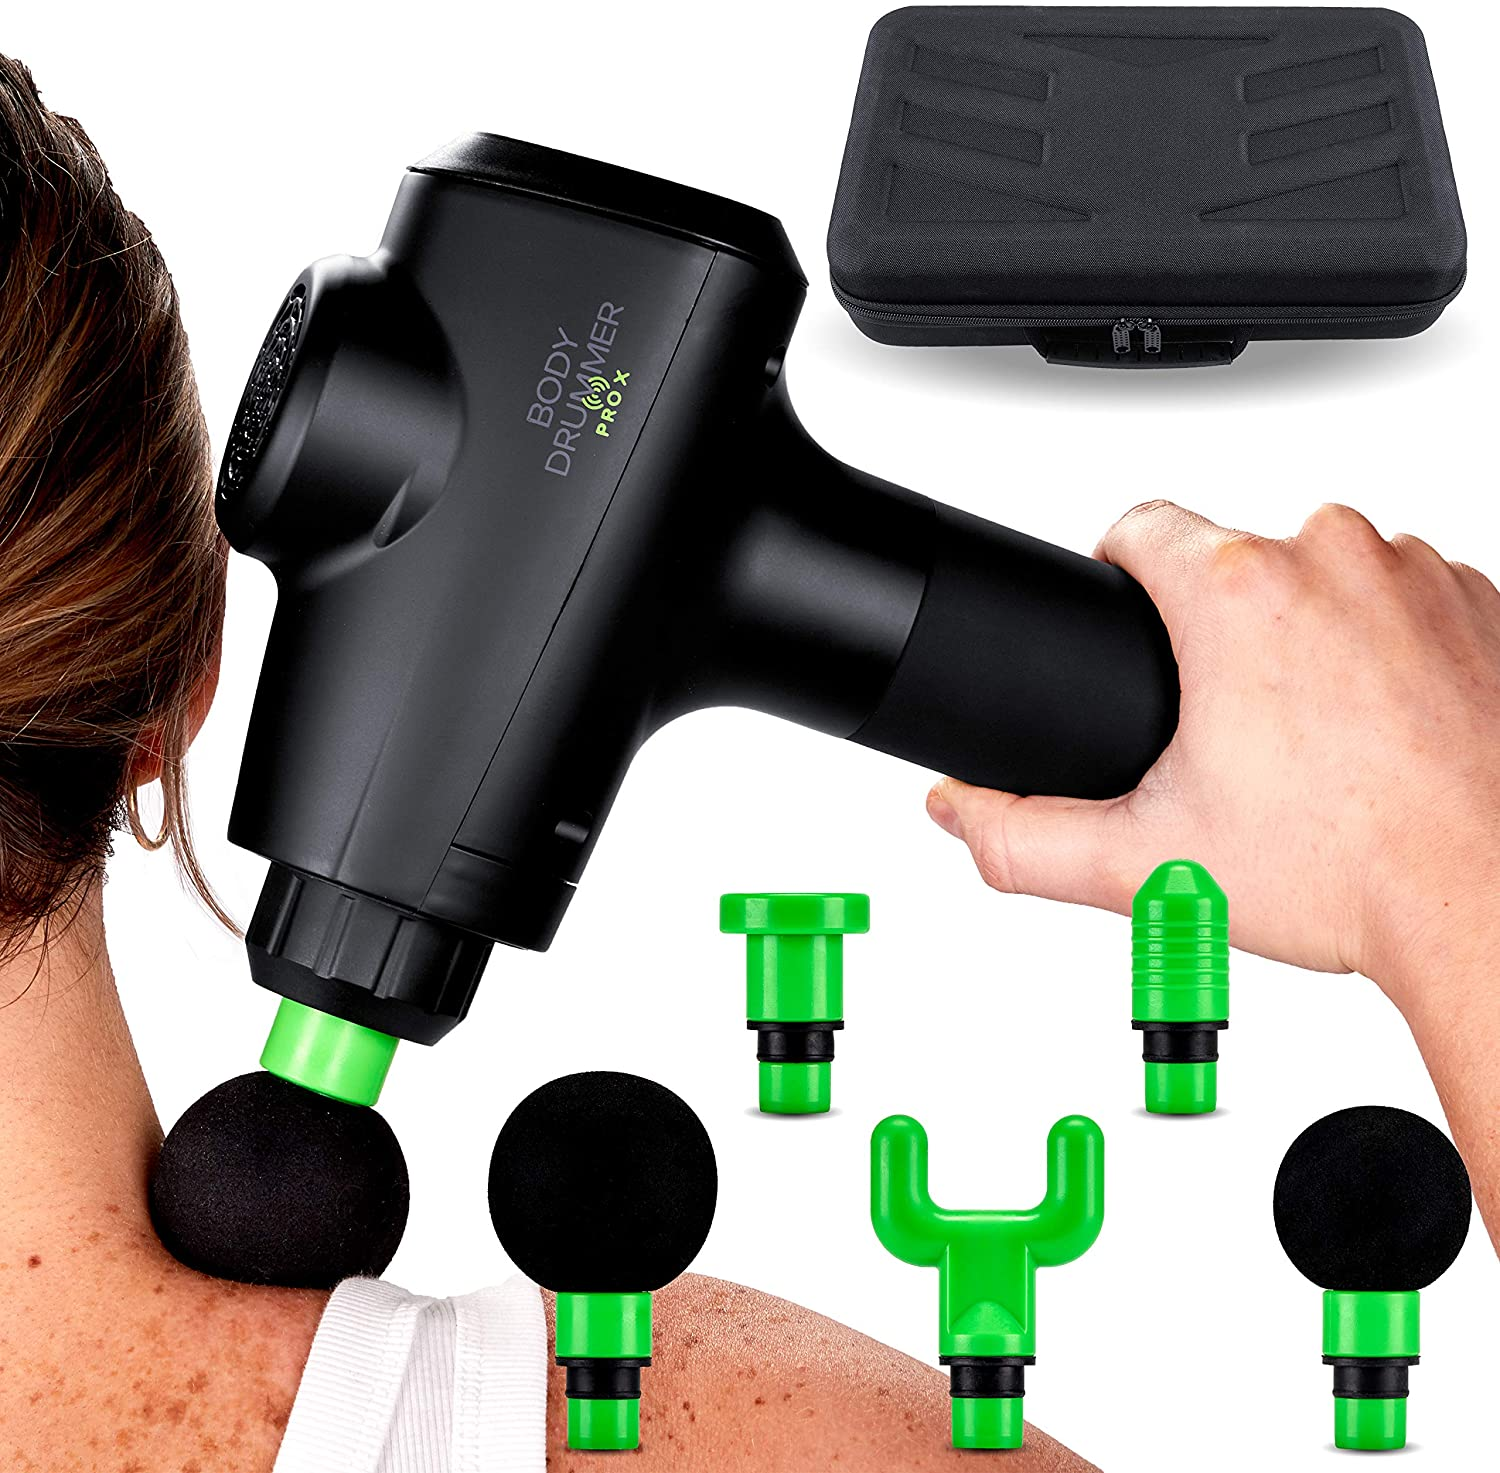 Body Drummer Pro X Percussion Massager